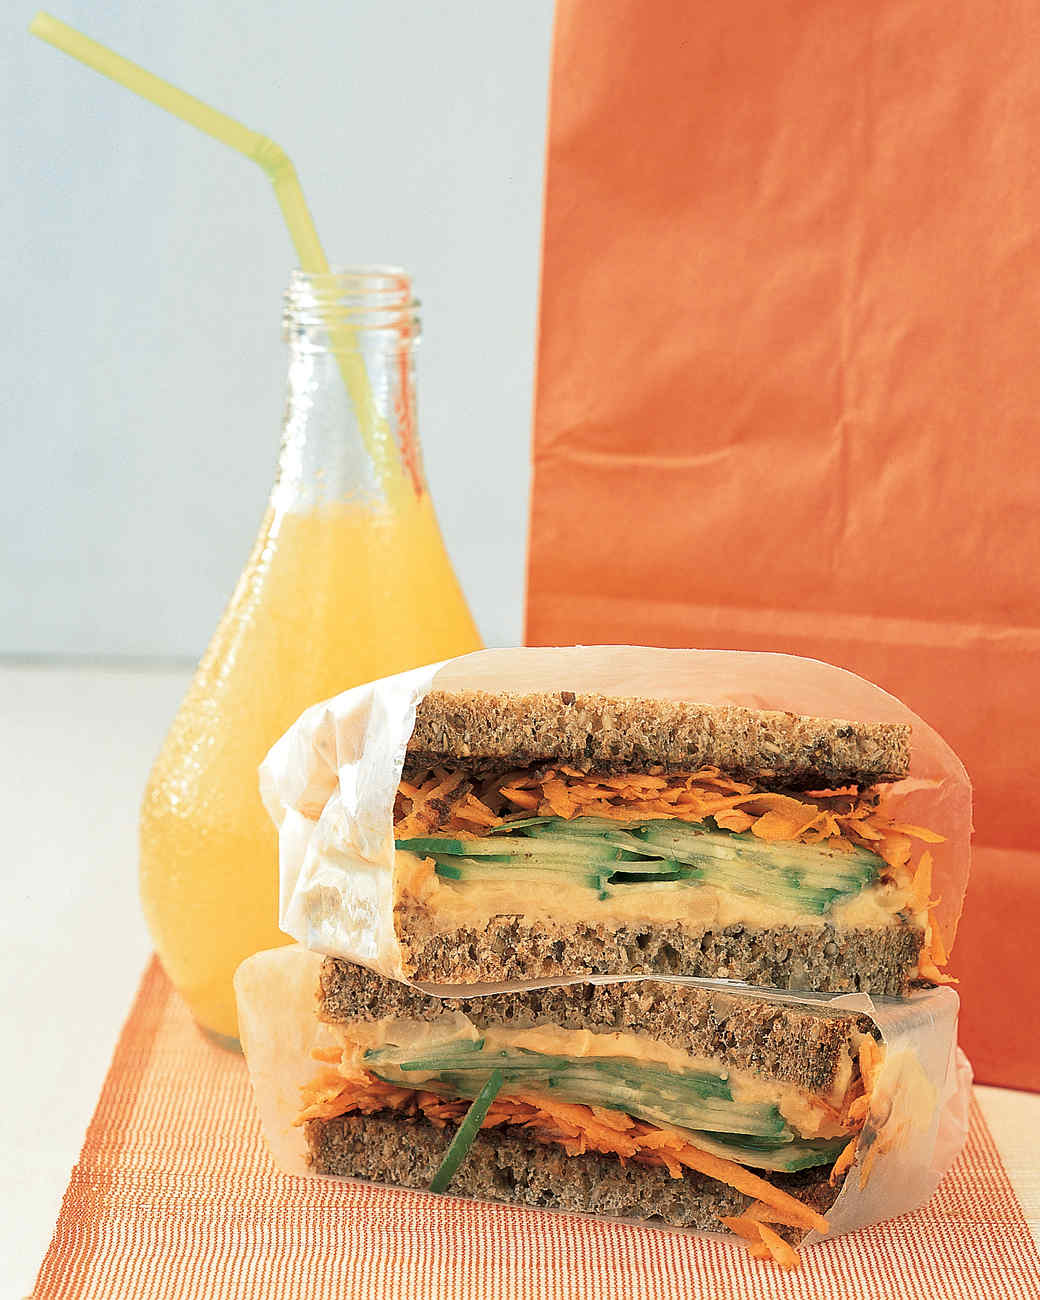 Vegetarian Sandwich and Wrap Recipes